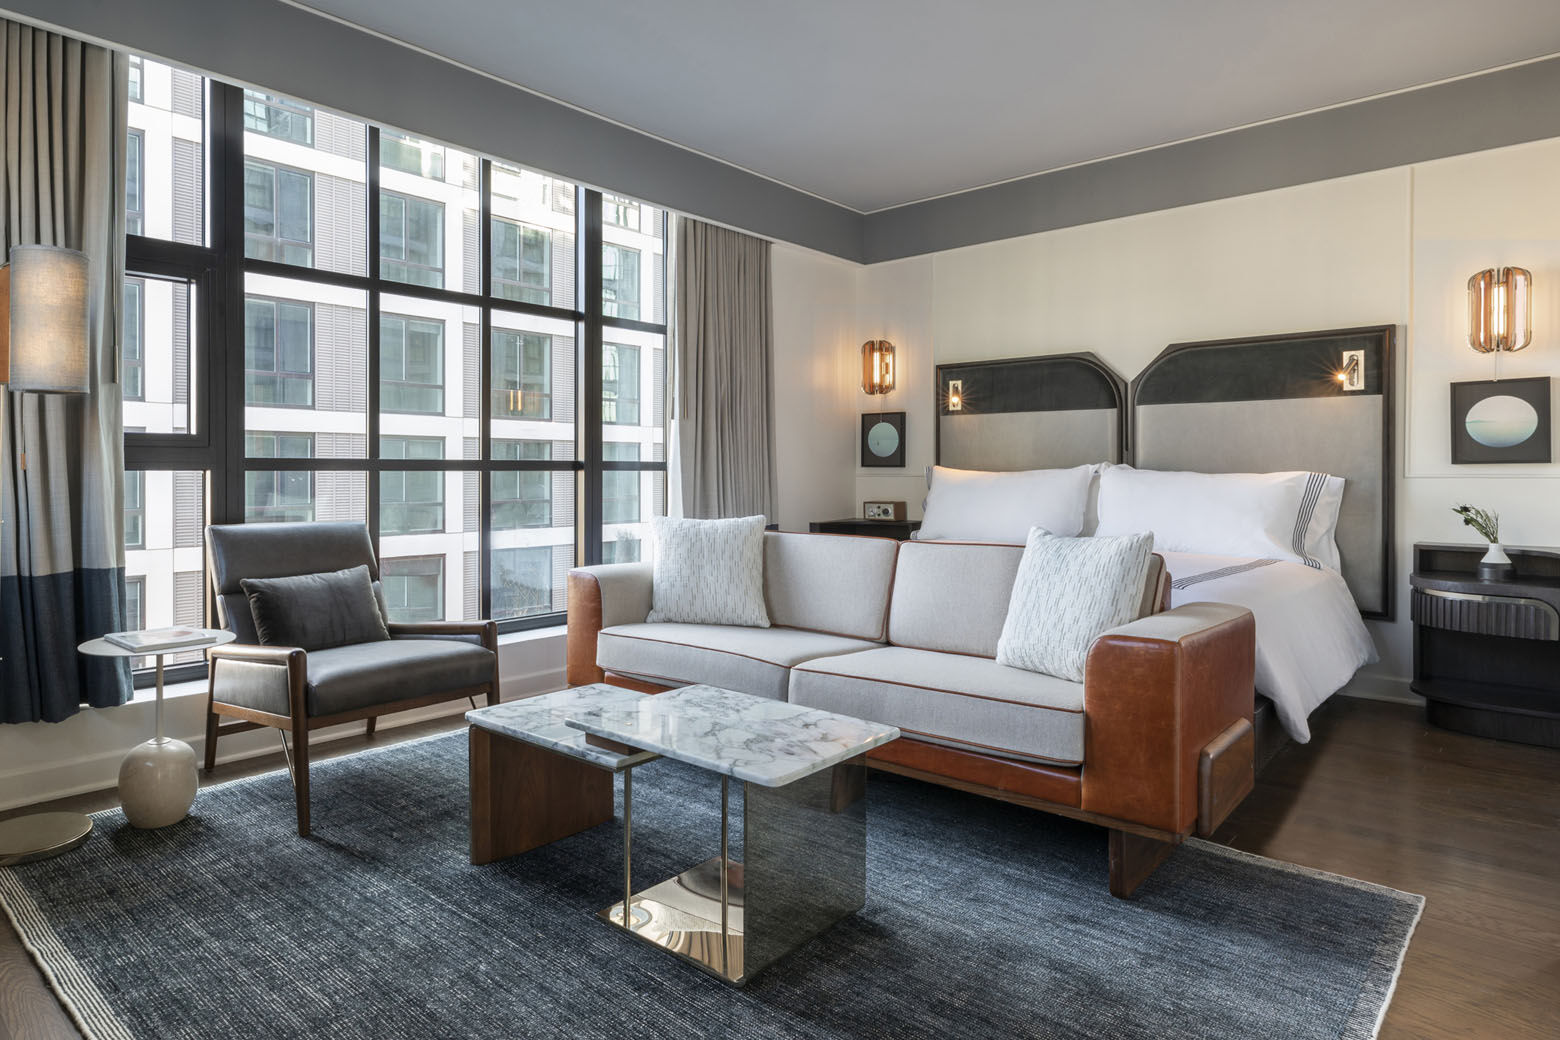 A look at the bedroom in a suite at the Thompson D.C. in the Capitol Riverfront's Navy Yard Neighborhood. The hotel's 225 rooms and suites all have floor-to-ceiling windows and views of the Anacostia River and Nationals Park.